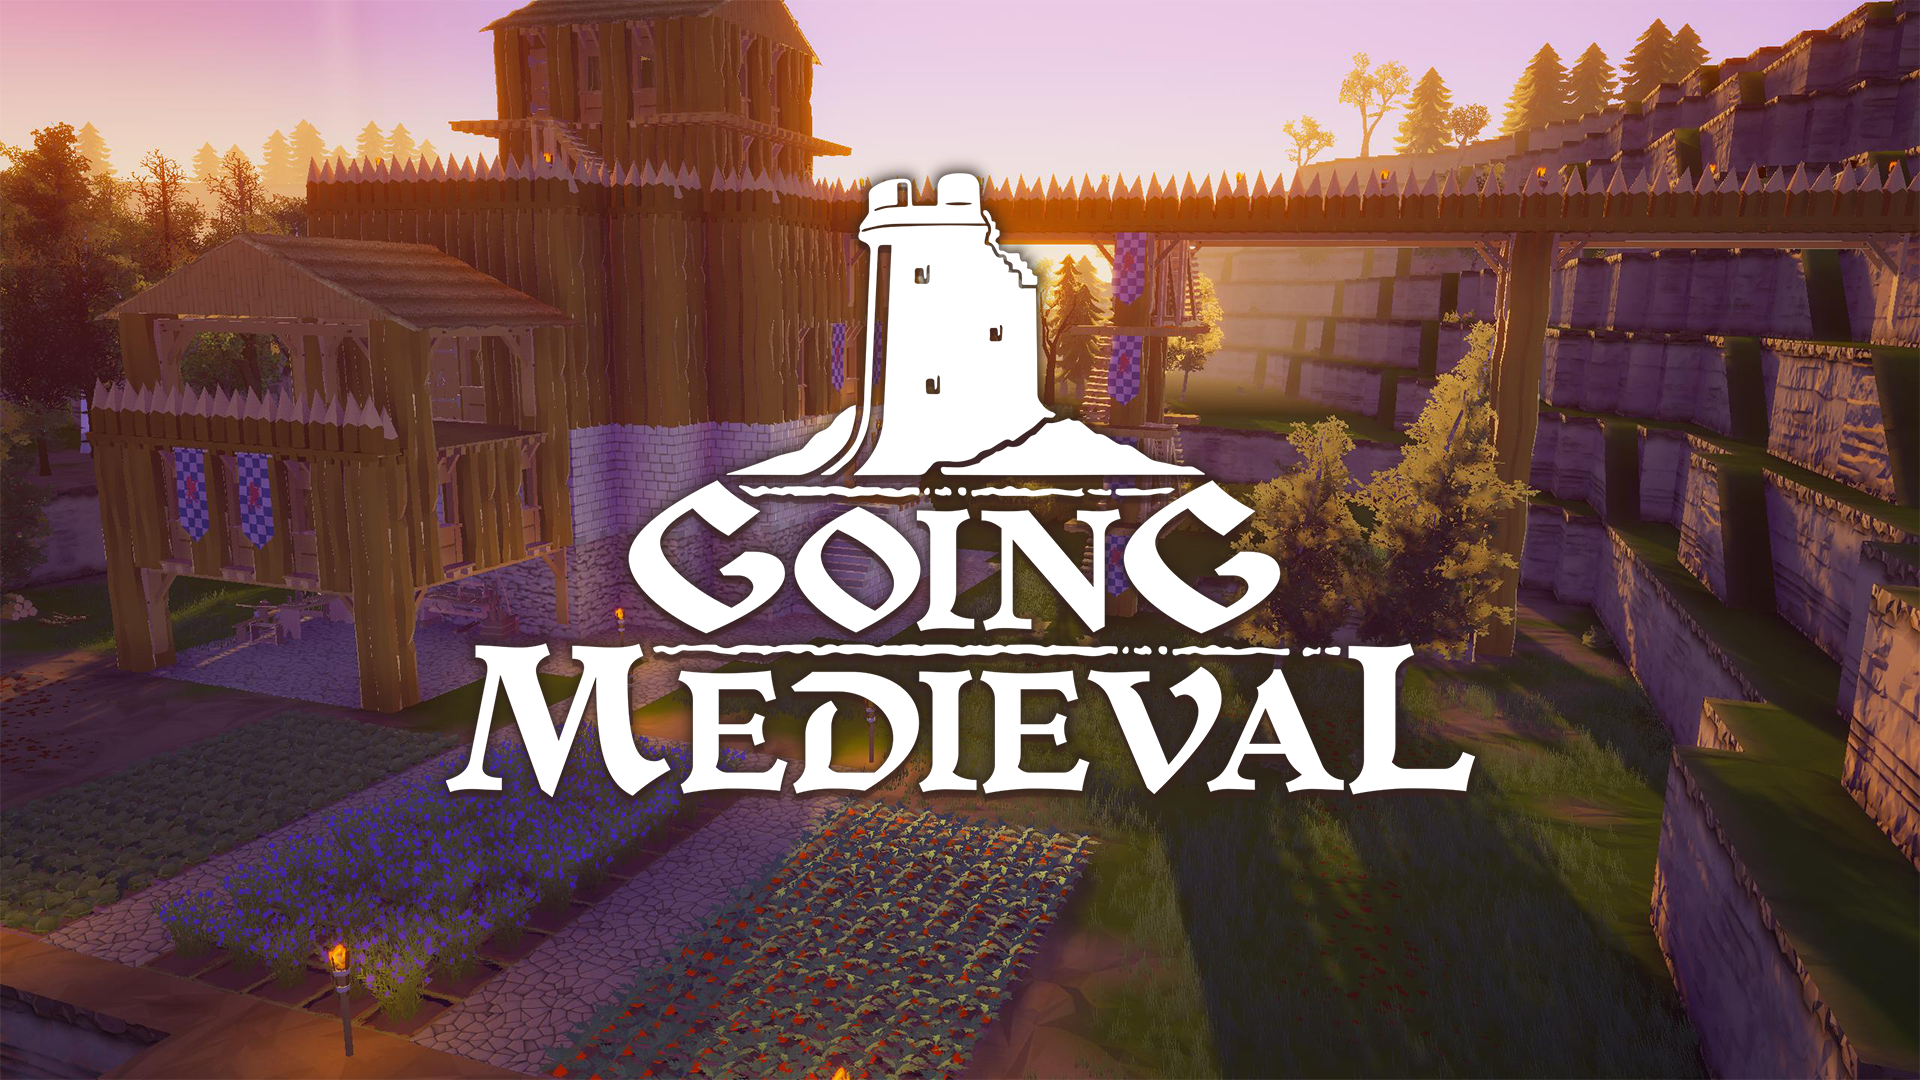 Going Medieval main